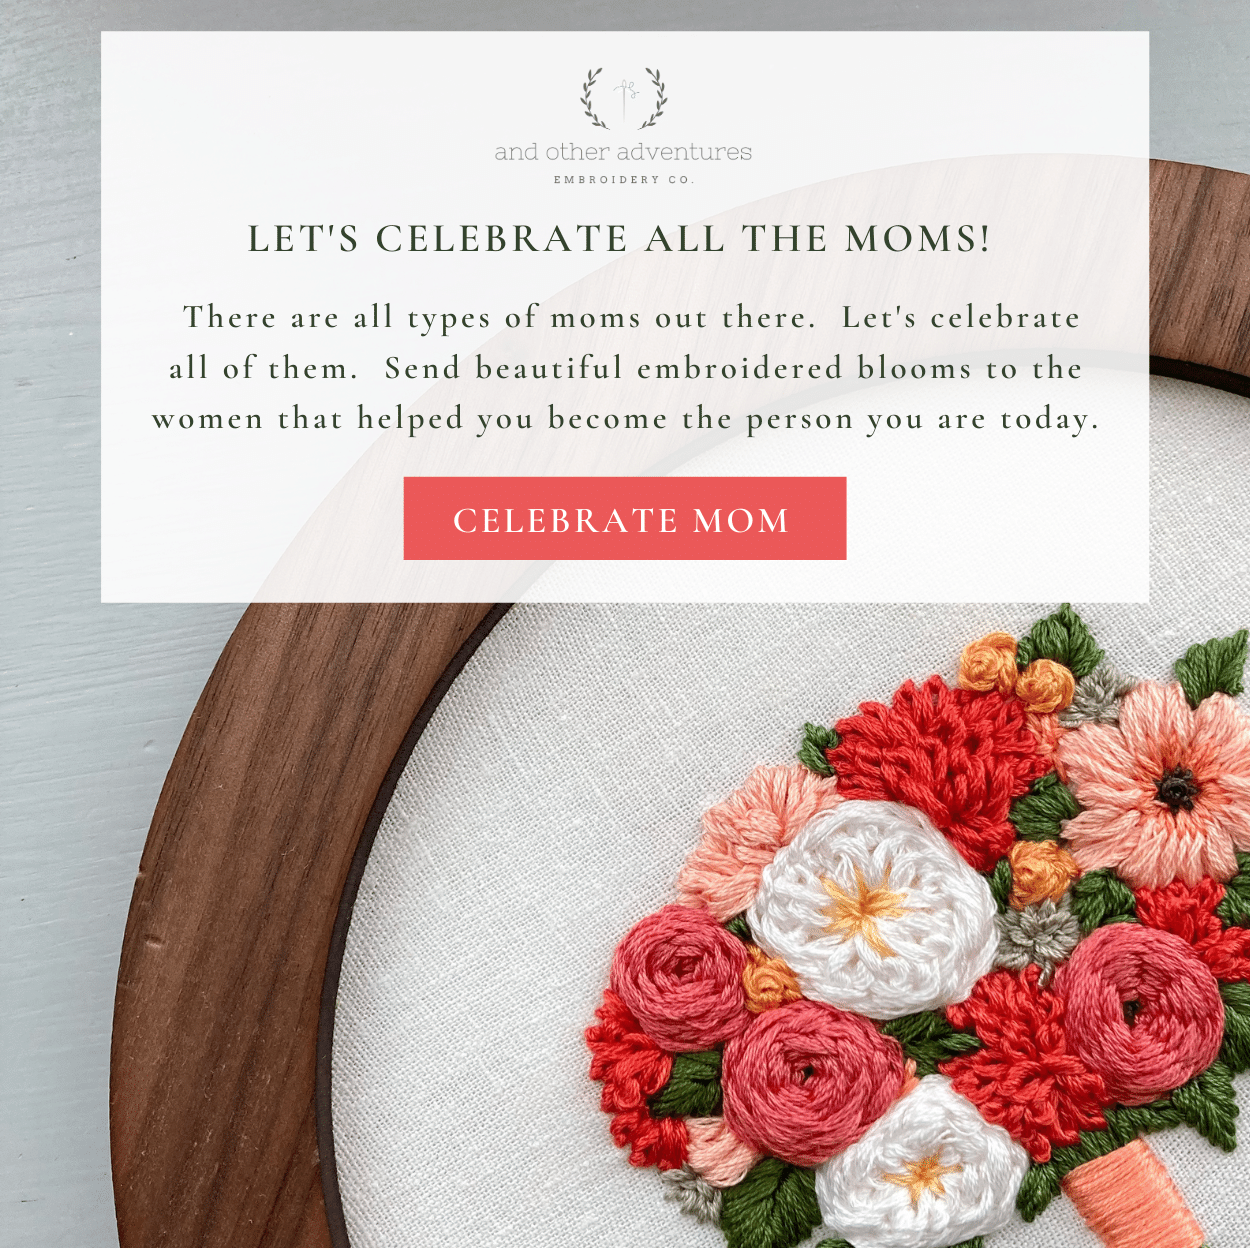 Let's celebrate all the moms - The Mother's Day Collection | And Other Adventures Embroidery Co